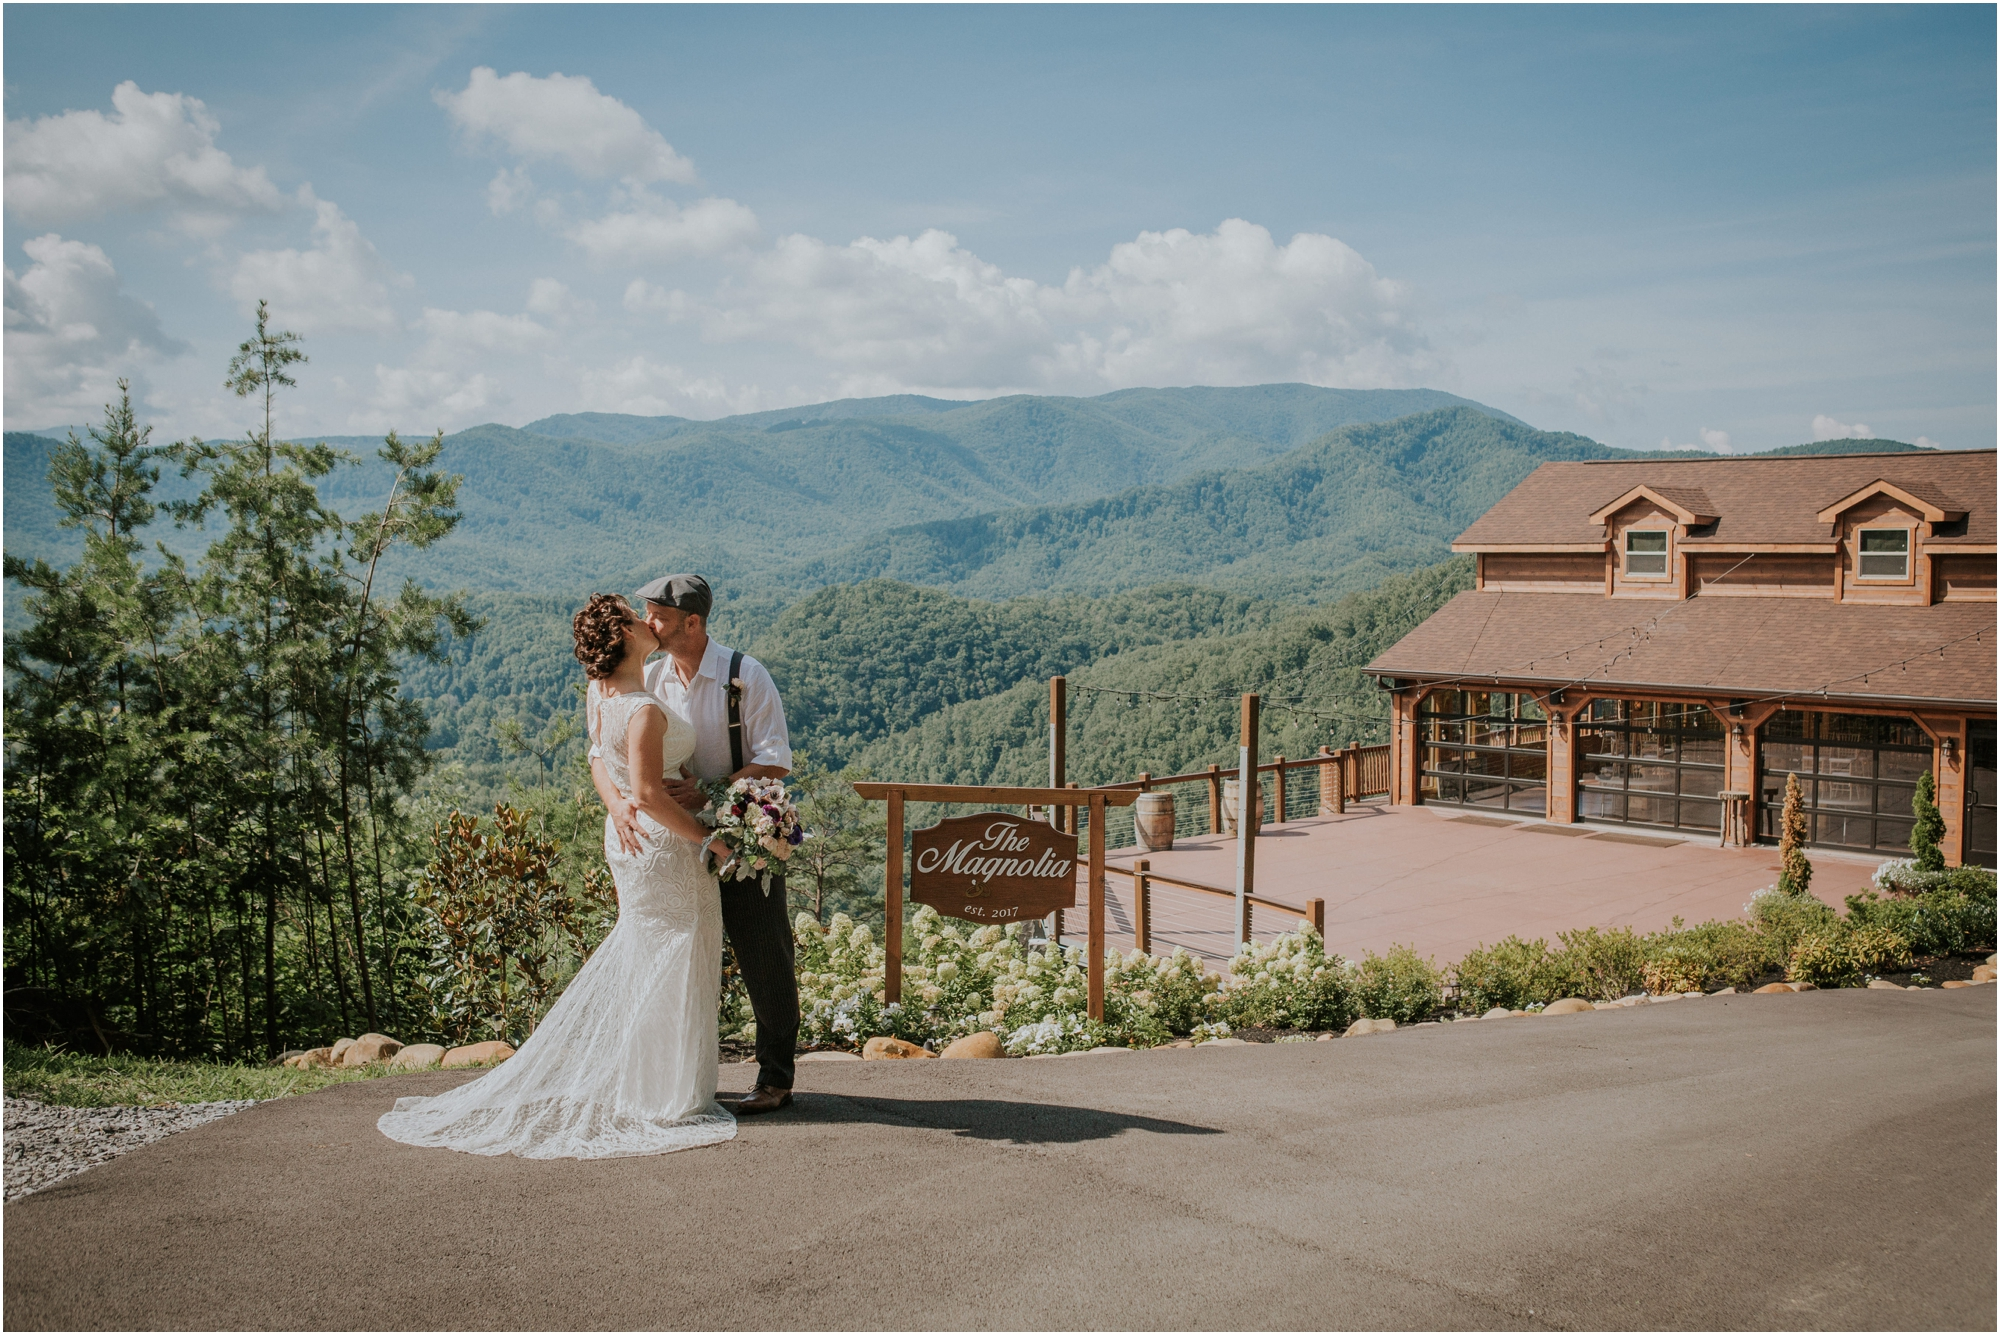 cabin-parkside-resort-the-magnolia-venue-tennessee-mountain-views-intimate-wedding_0102.jpg